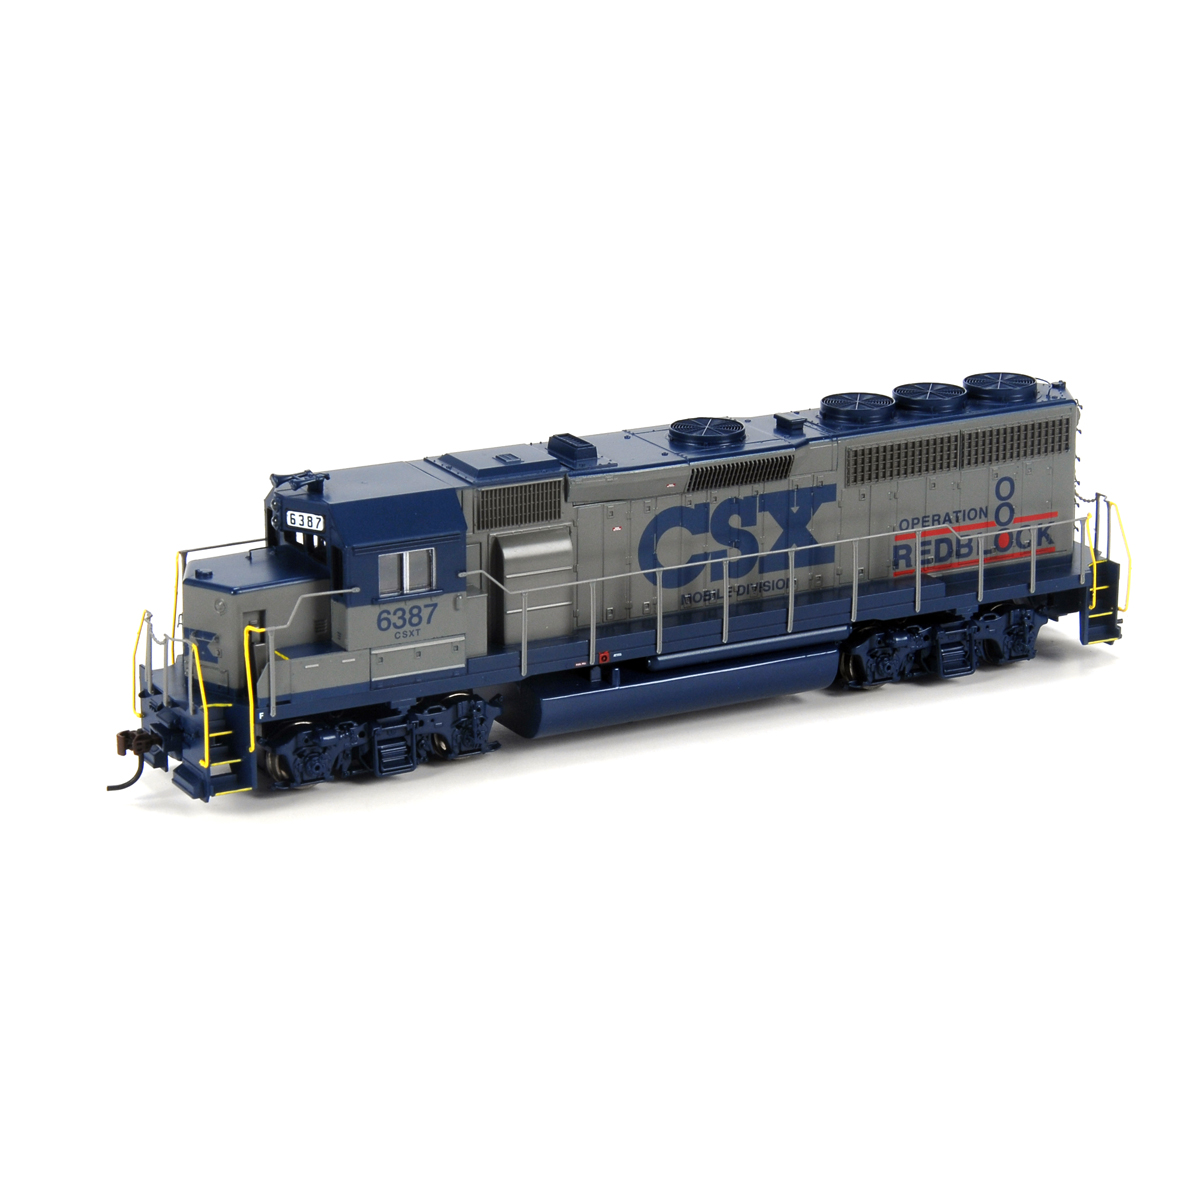 HO RTR GP40-2, CSX/Operation Redblock #6387